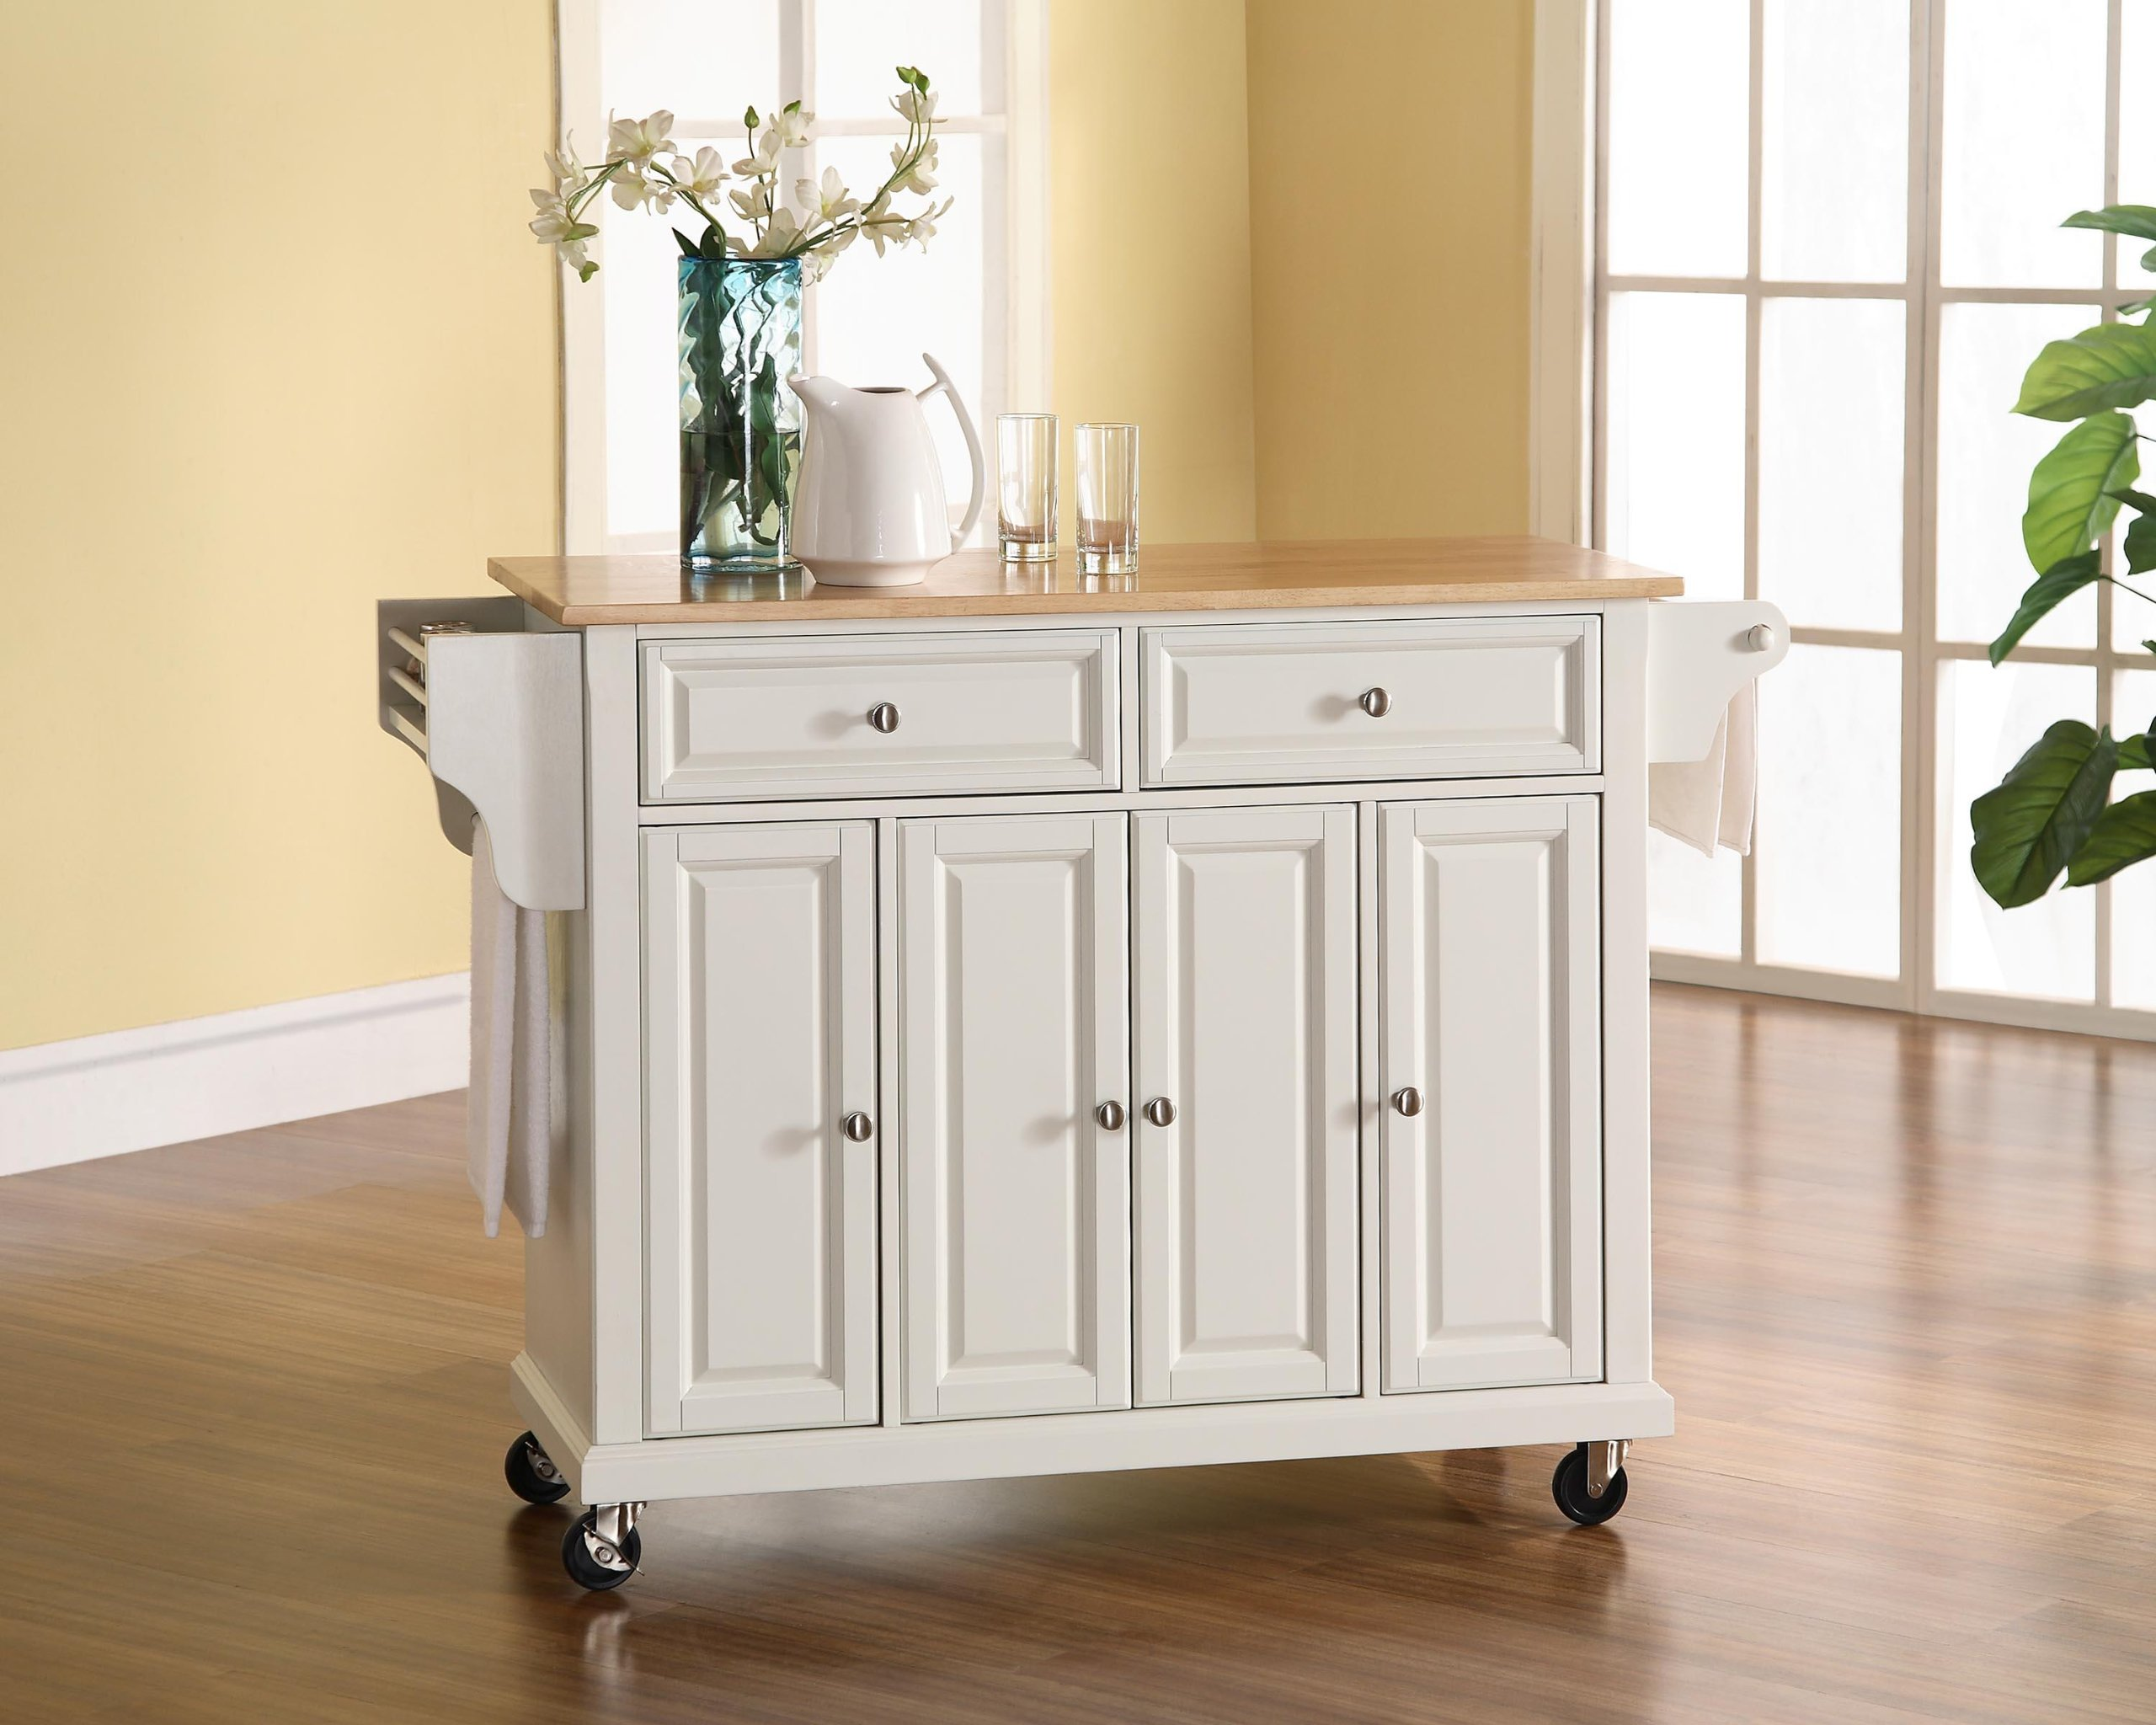 Crosley Furniture Rolling Kitchen Island with Natural Wood Top - White by Crosley Furniture (Image #1)